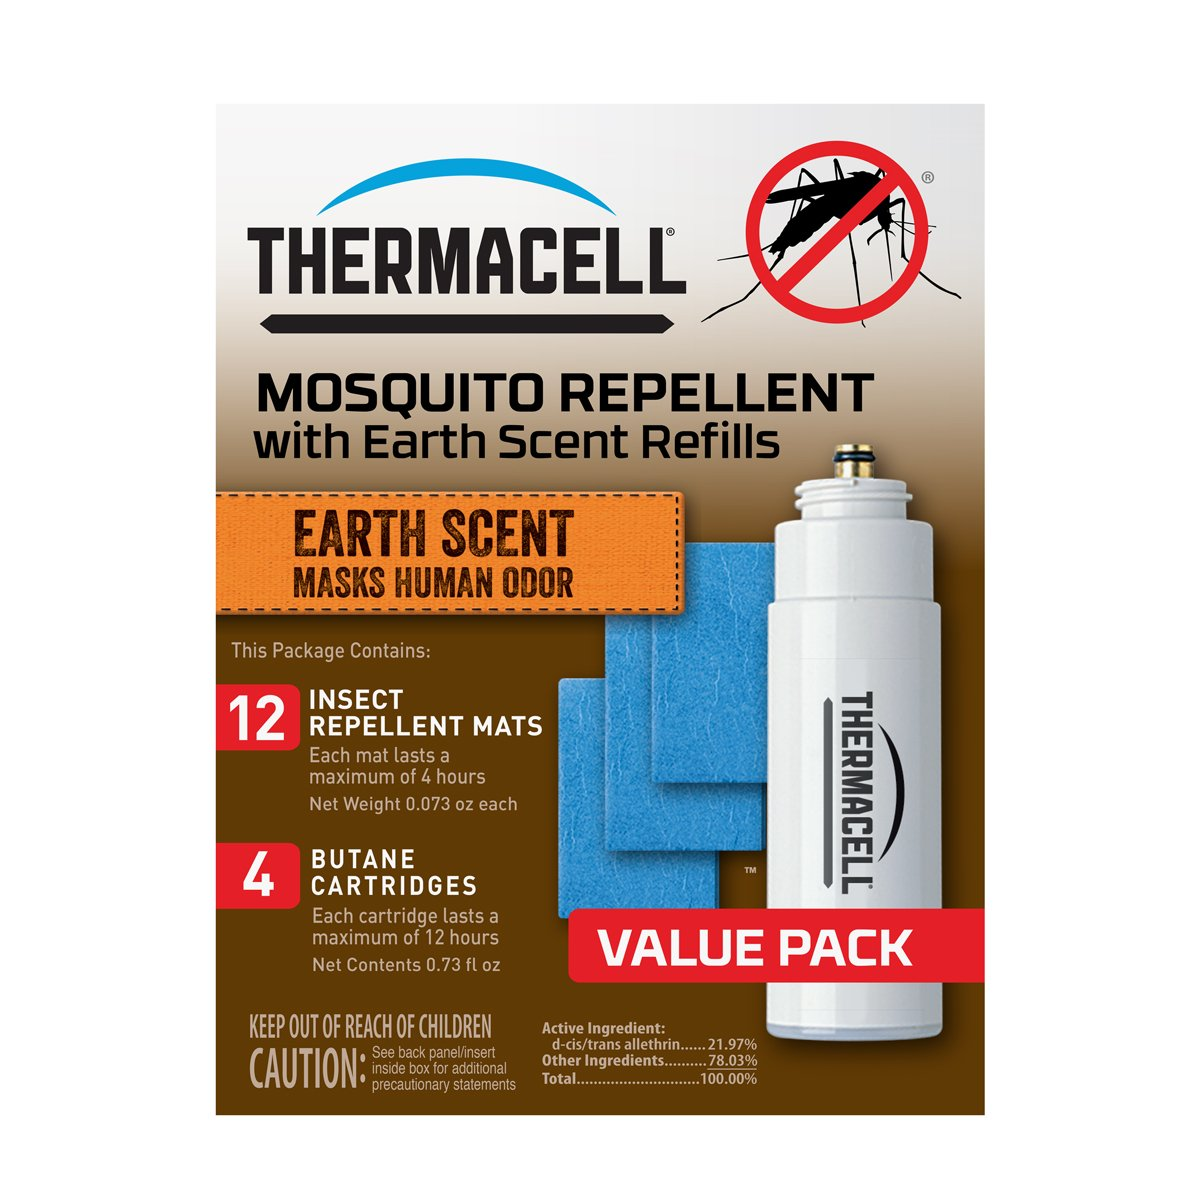 Thermacell E-4 Mosquito Repeller Refill with Earth Scent,48 HourPack (12 Repellent Mats and 4 Fuel Cartridges)